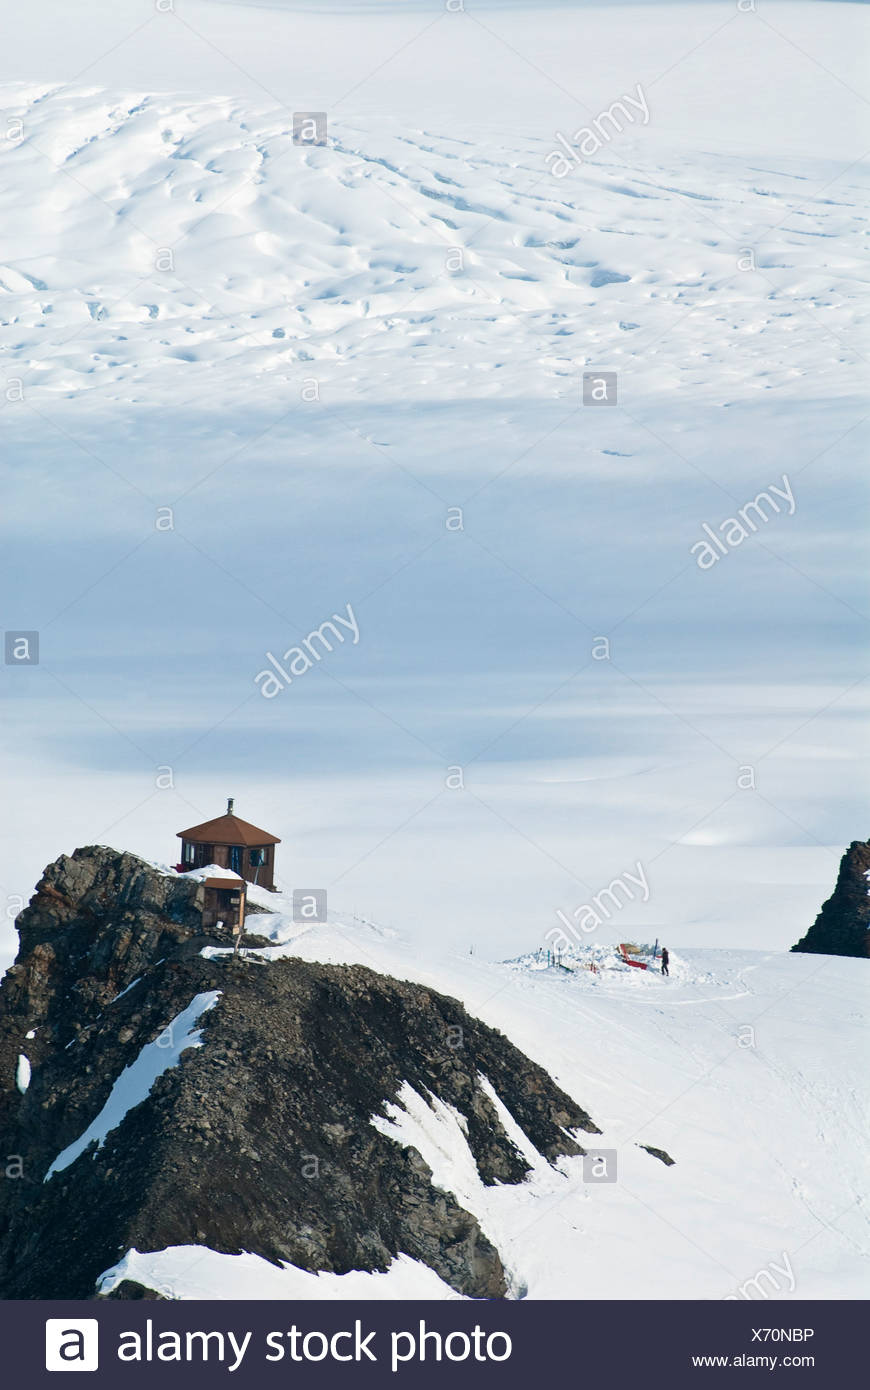 Ruth Ampitheater in Denali National Park. View from the tele-ski hill behind the Don Sheldon hut with a group of winter campers - Stock Image